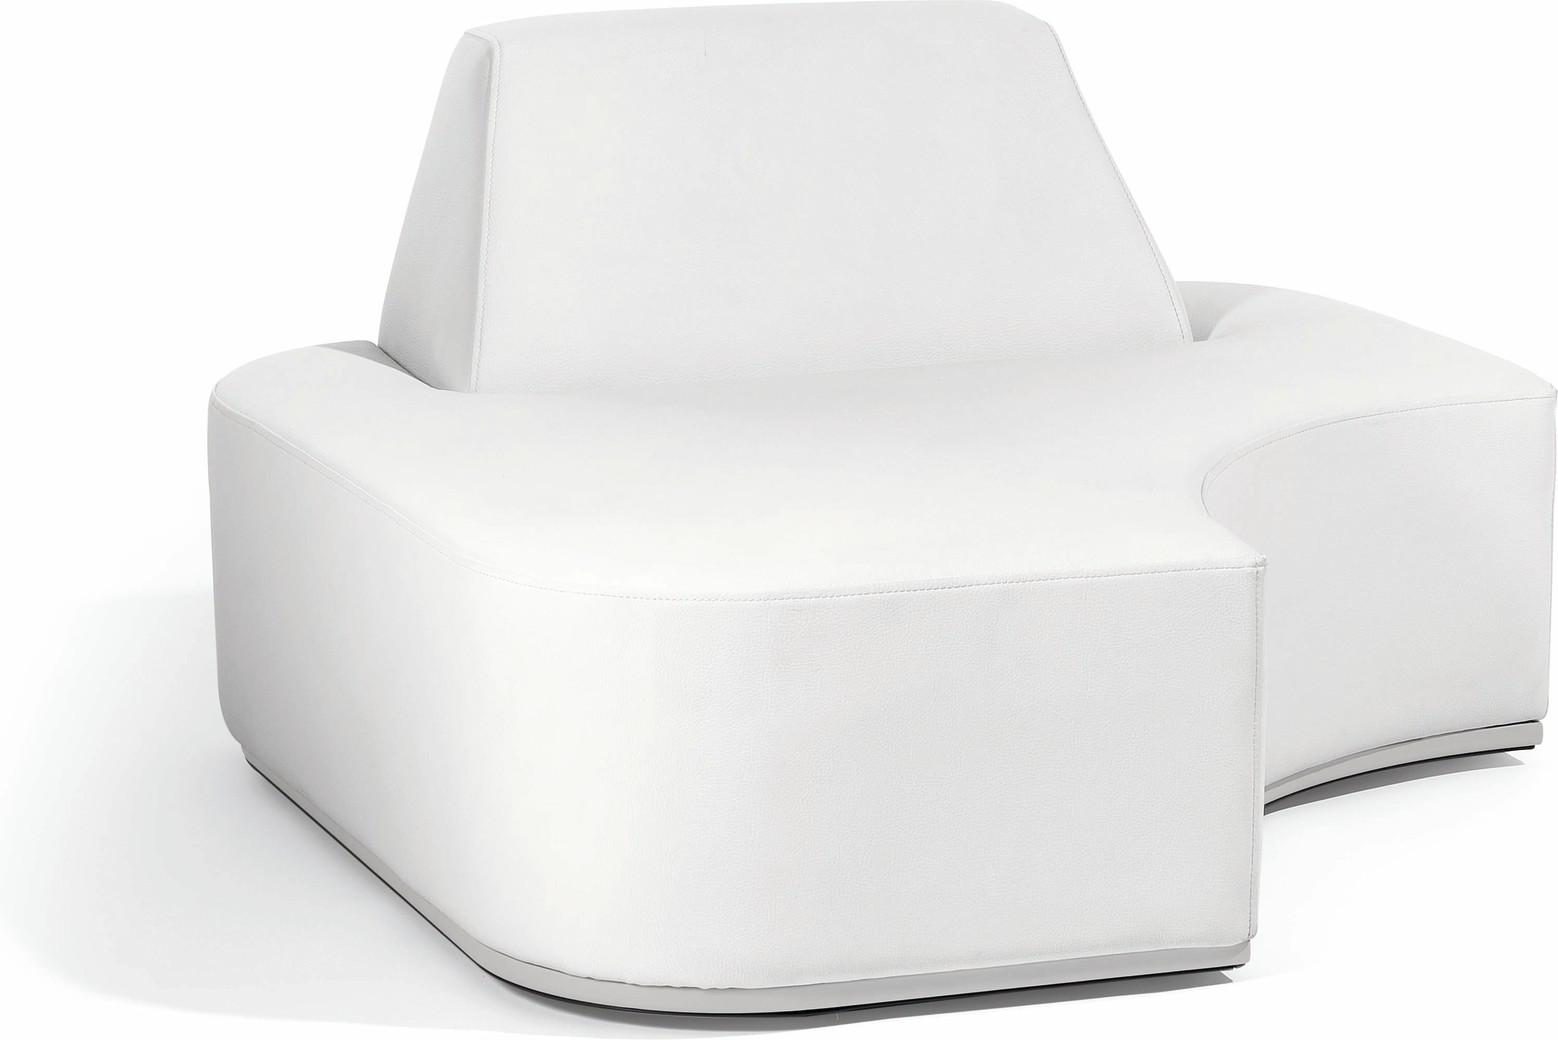 Moon Island right corner seat nautic leather white